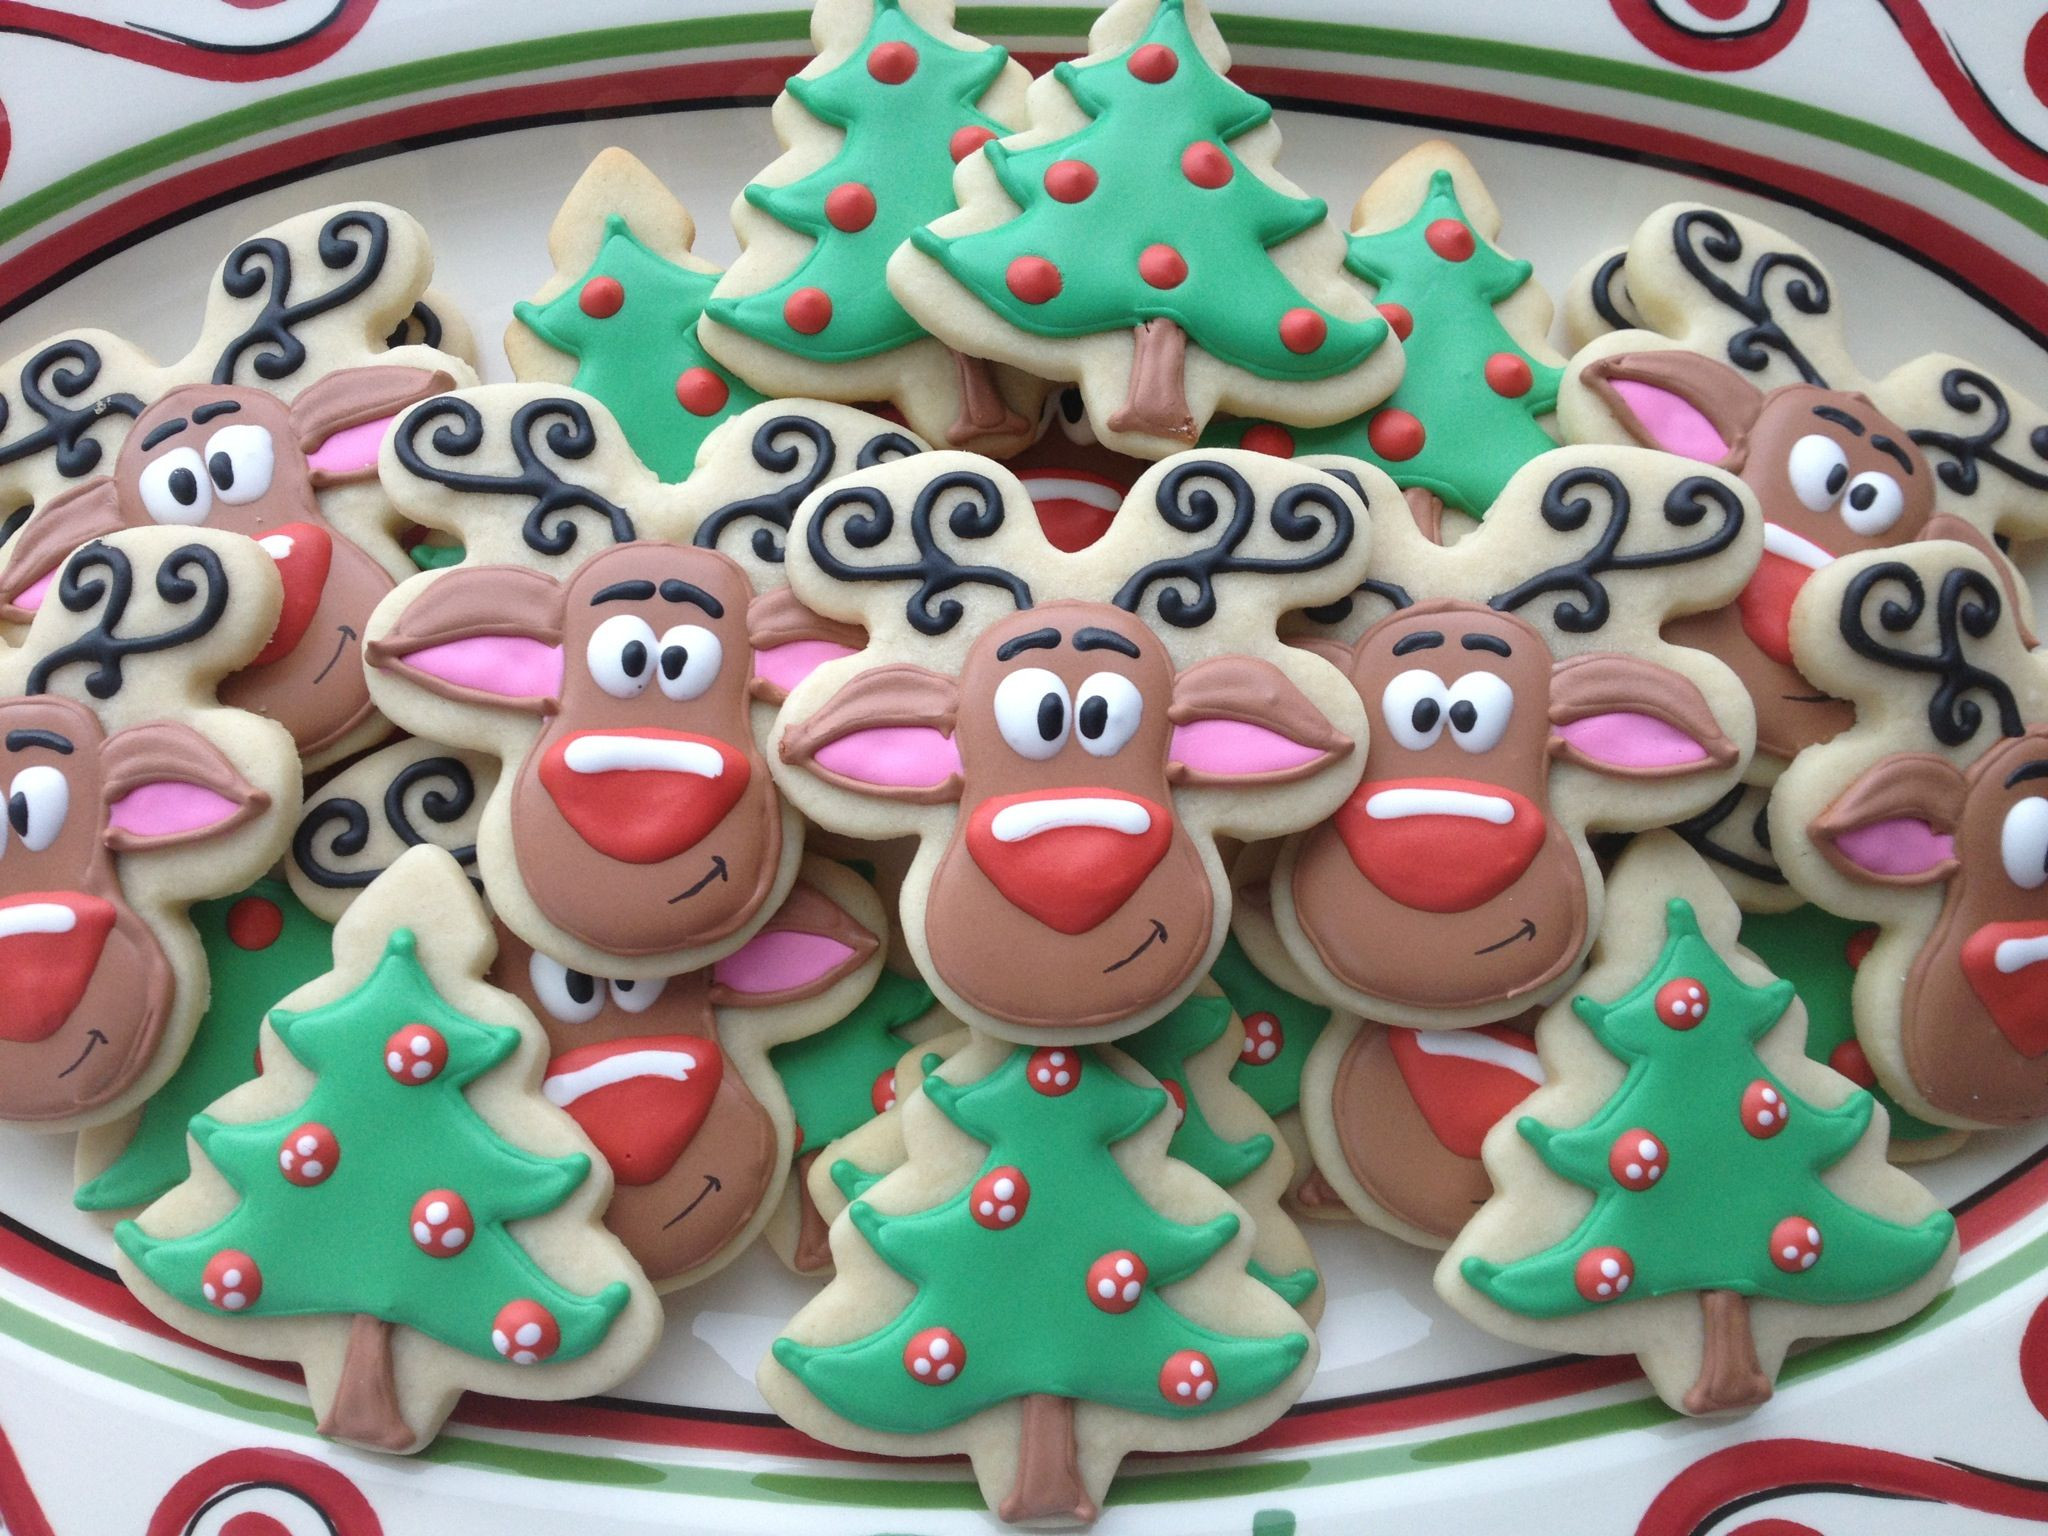 Christmas Cookie Icing Ideas  Christmas Cookies Rudolph sugar cookies with royal icing